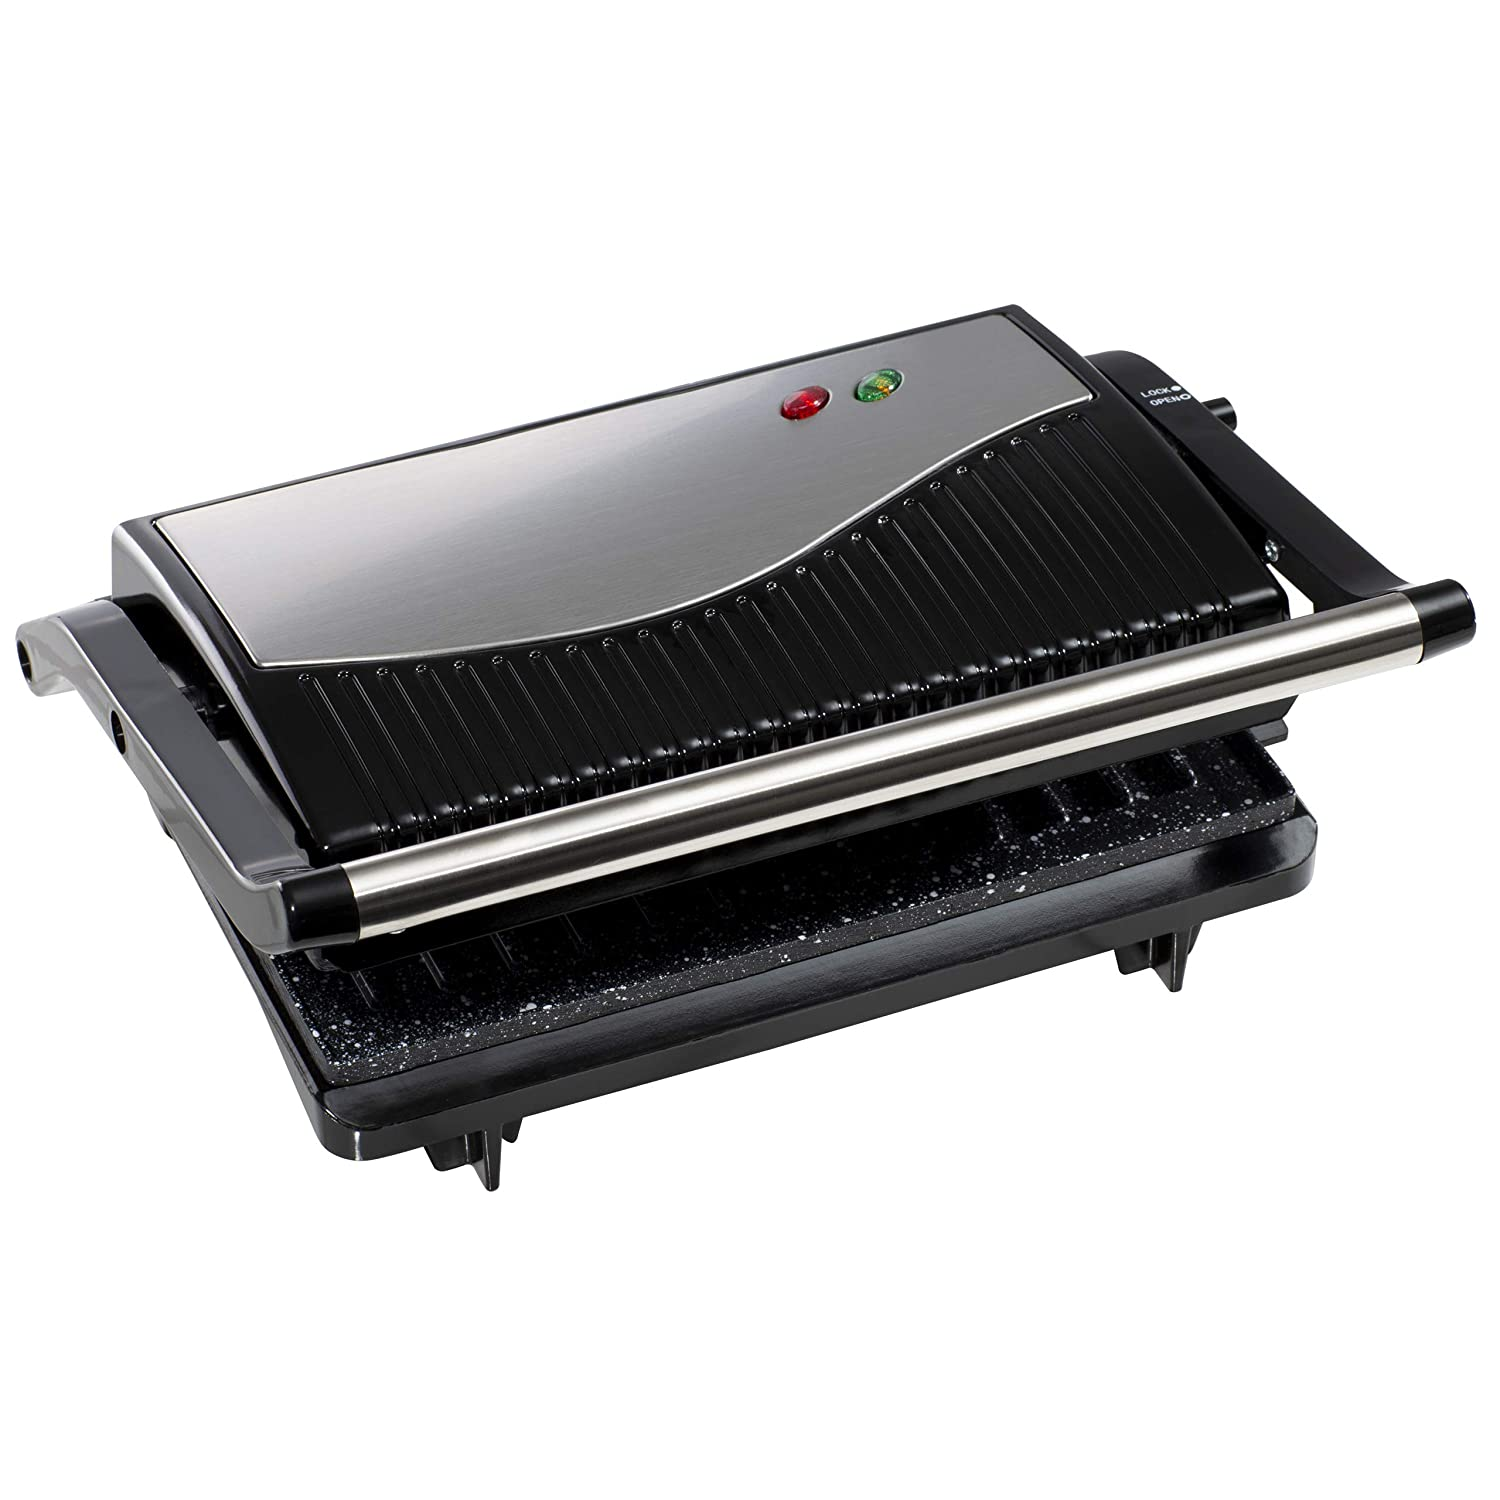 Skid Resistant Feet On /& Ready Light Indicators-750W Power Cool Touch Plastic Handle Easy Clean Non-Stick Plates Opens 90/° /& 180/° Silver Daewoo SDA1574GE Mini Panini Press